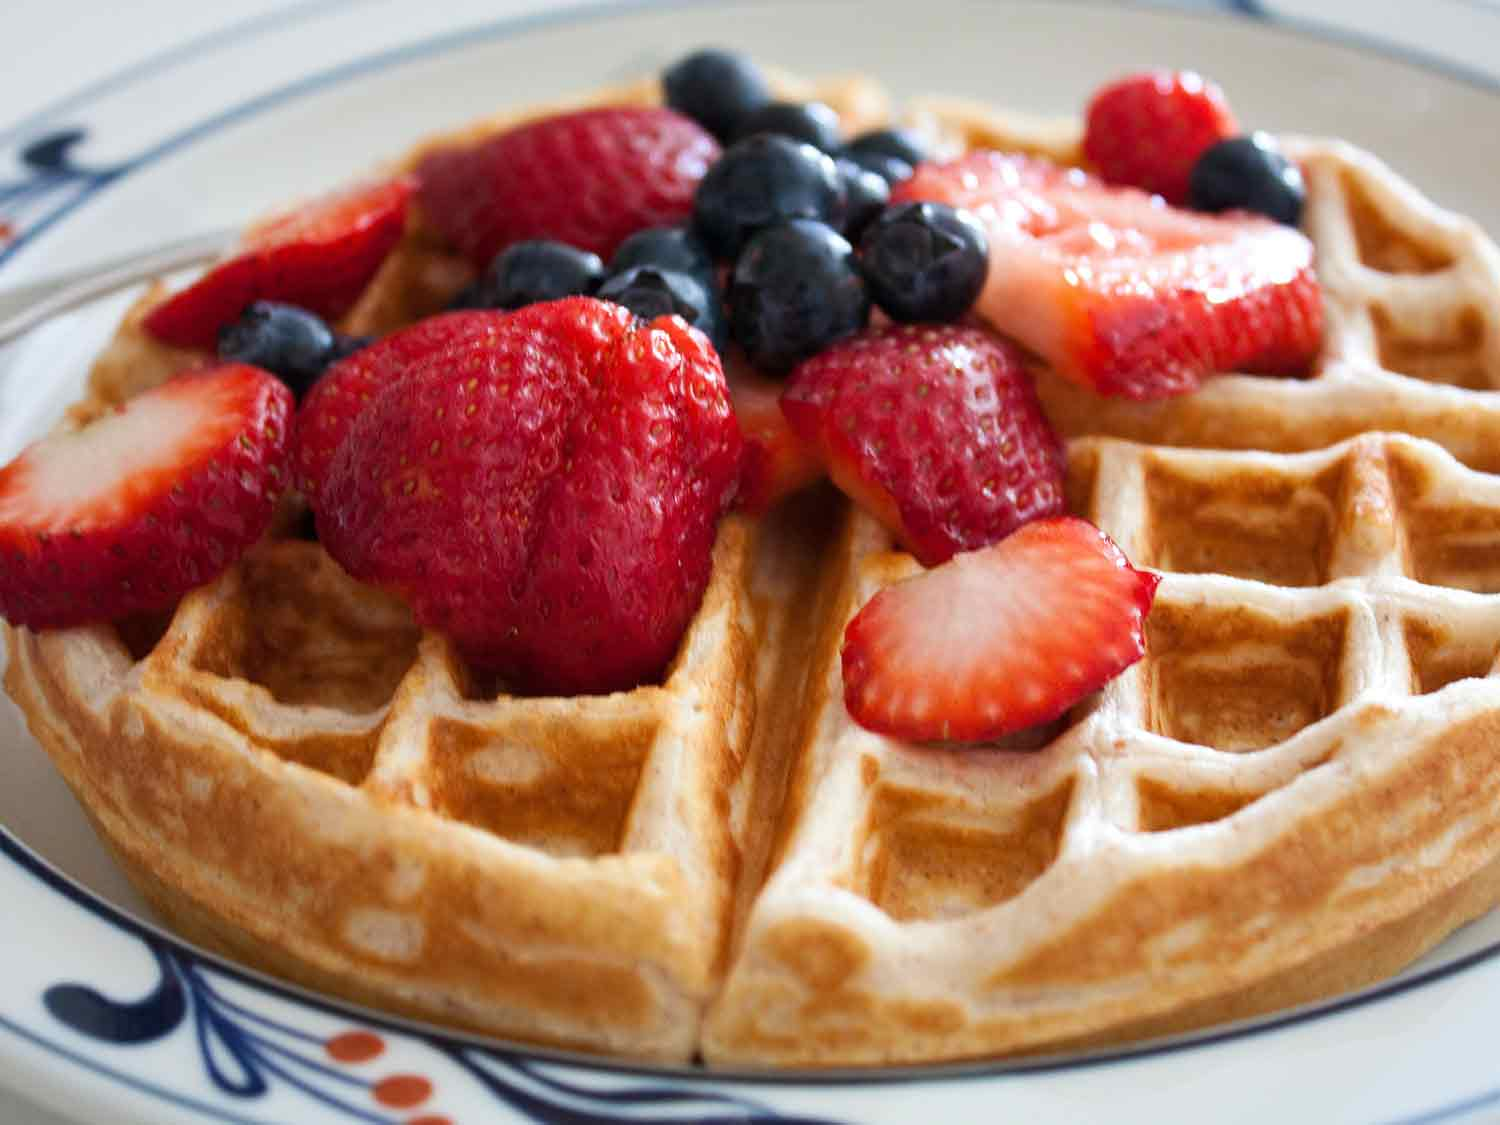 Waffle with blueberries and strawberries